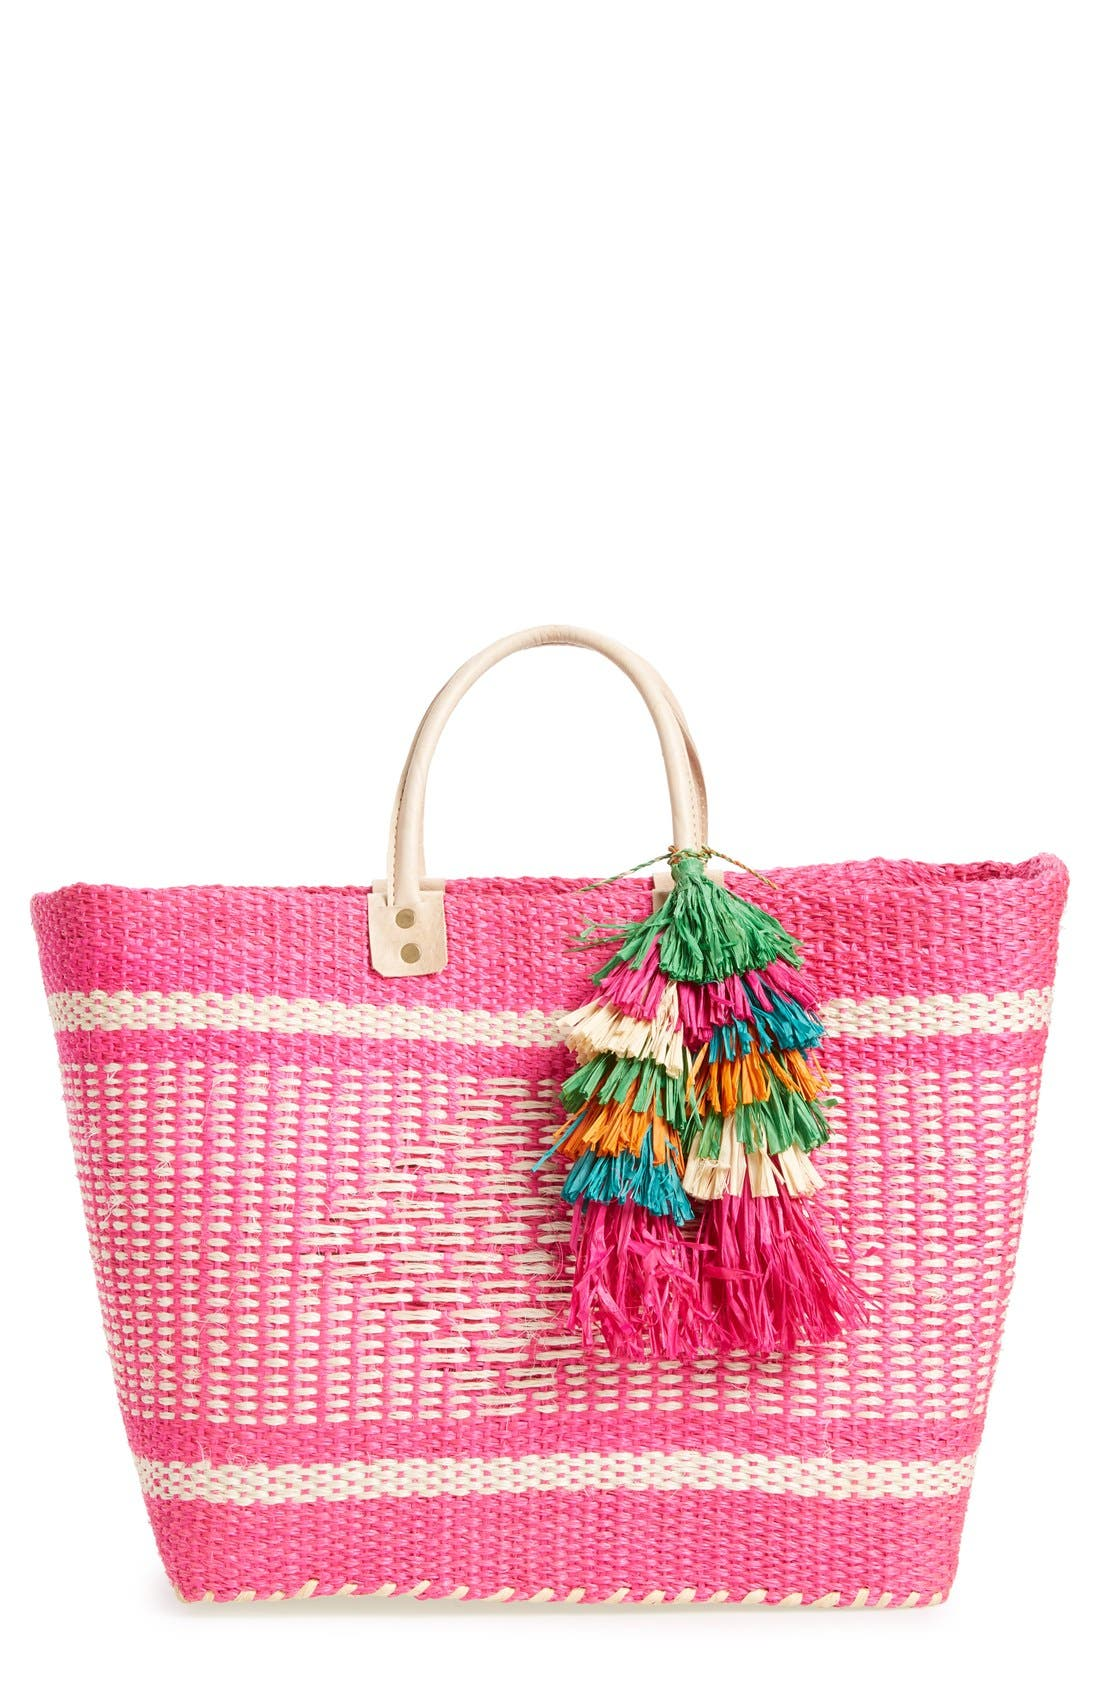 MAR Y SOL 'Ibiza' Woven Tote with Tassel